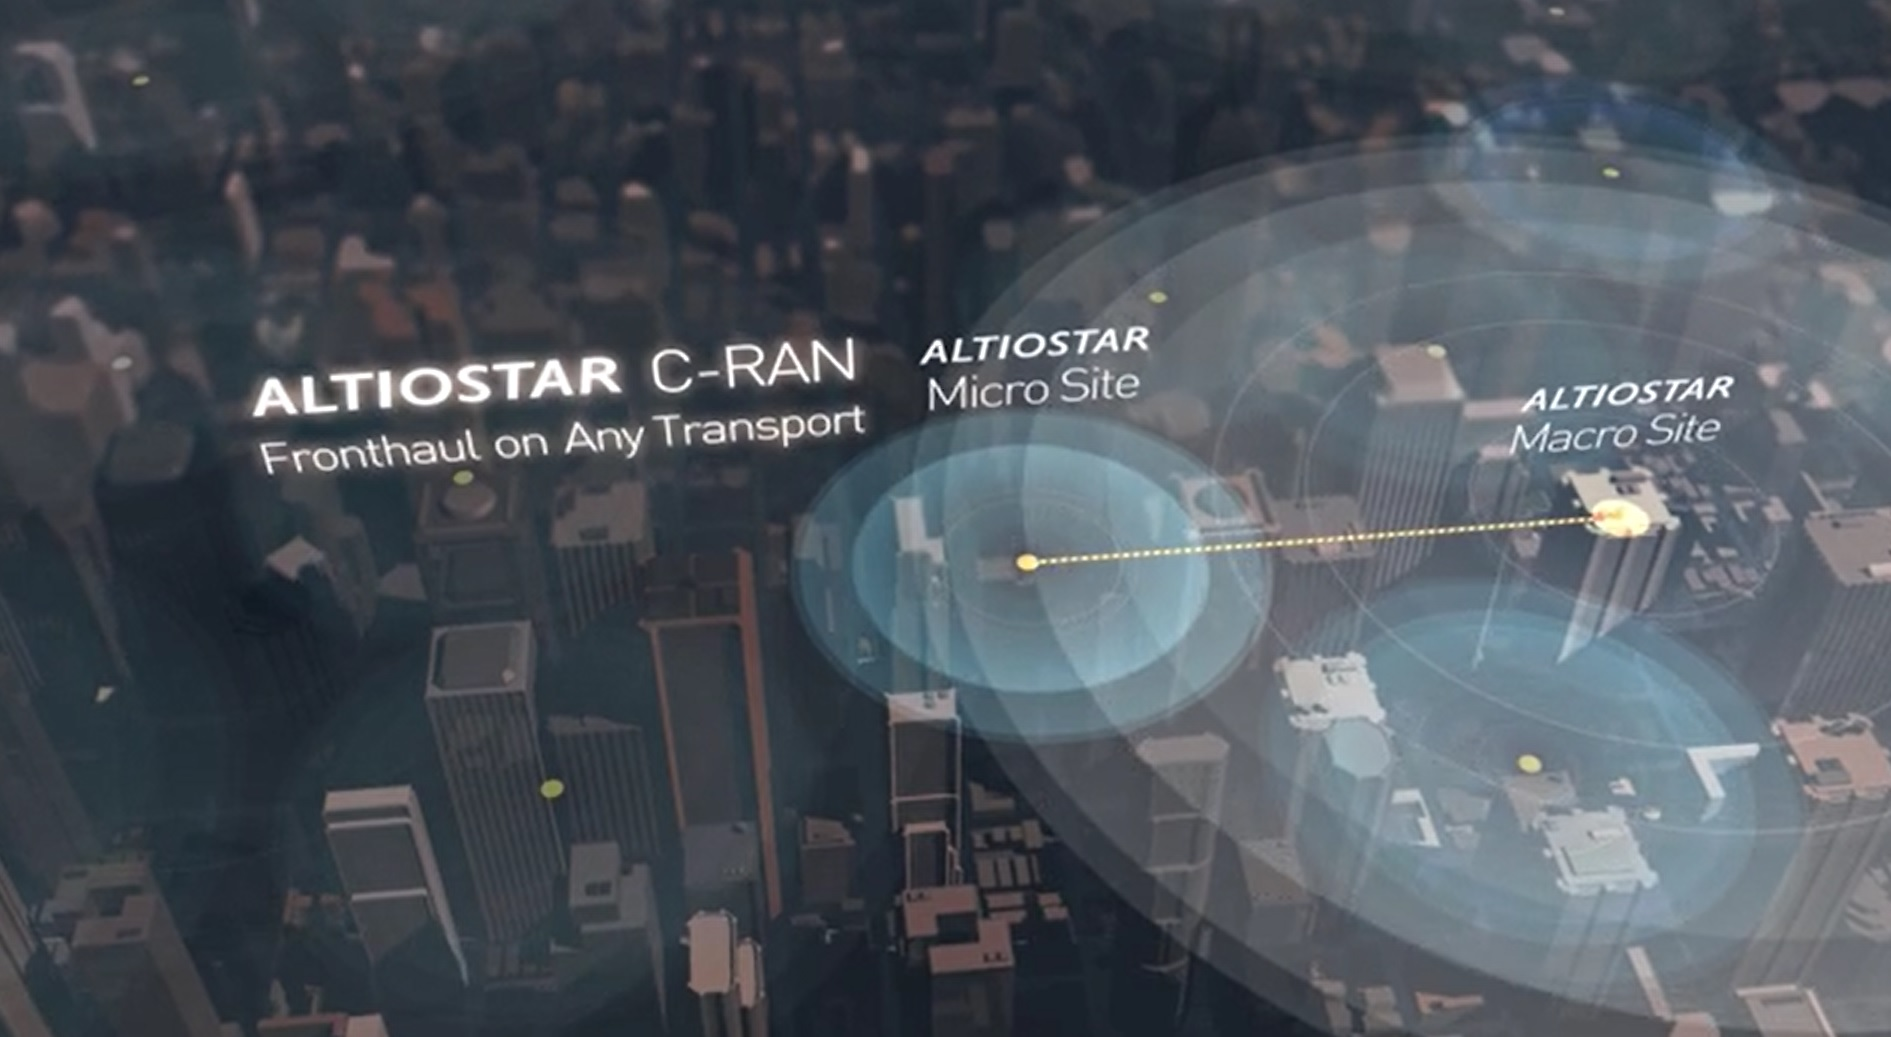 This C-RAN solution works over Ethernet fronthaul and it does not require dark fiber in the last mile, which conventional C-RANs require to carry CPRI. (image: Altiostar)